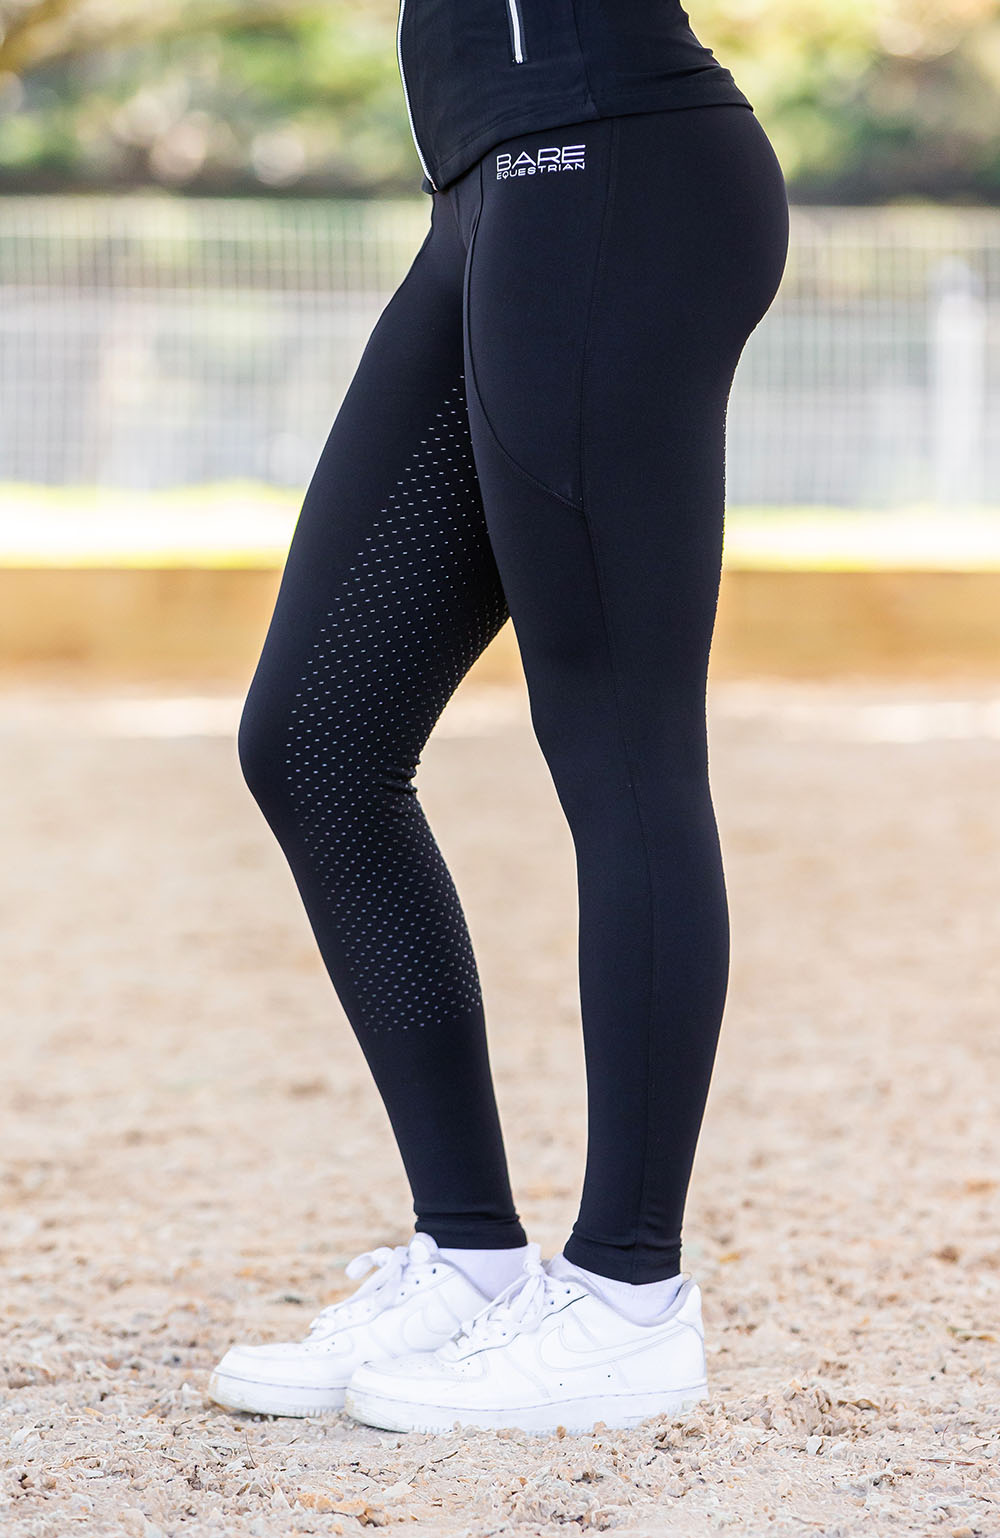 BARE Youth ThermoFit Winter Tight